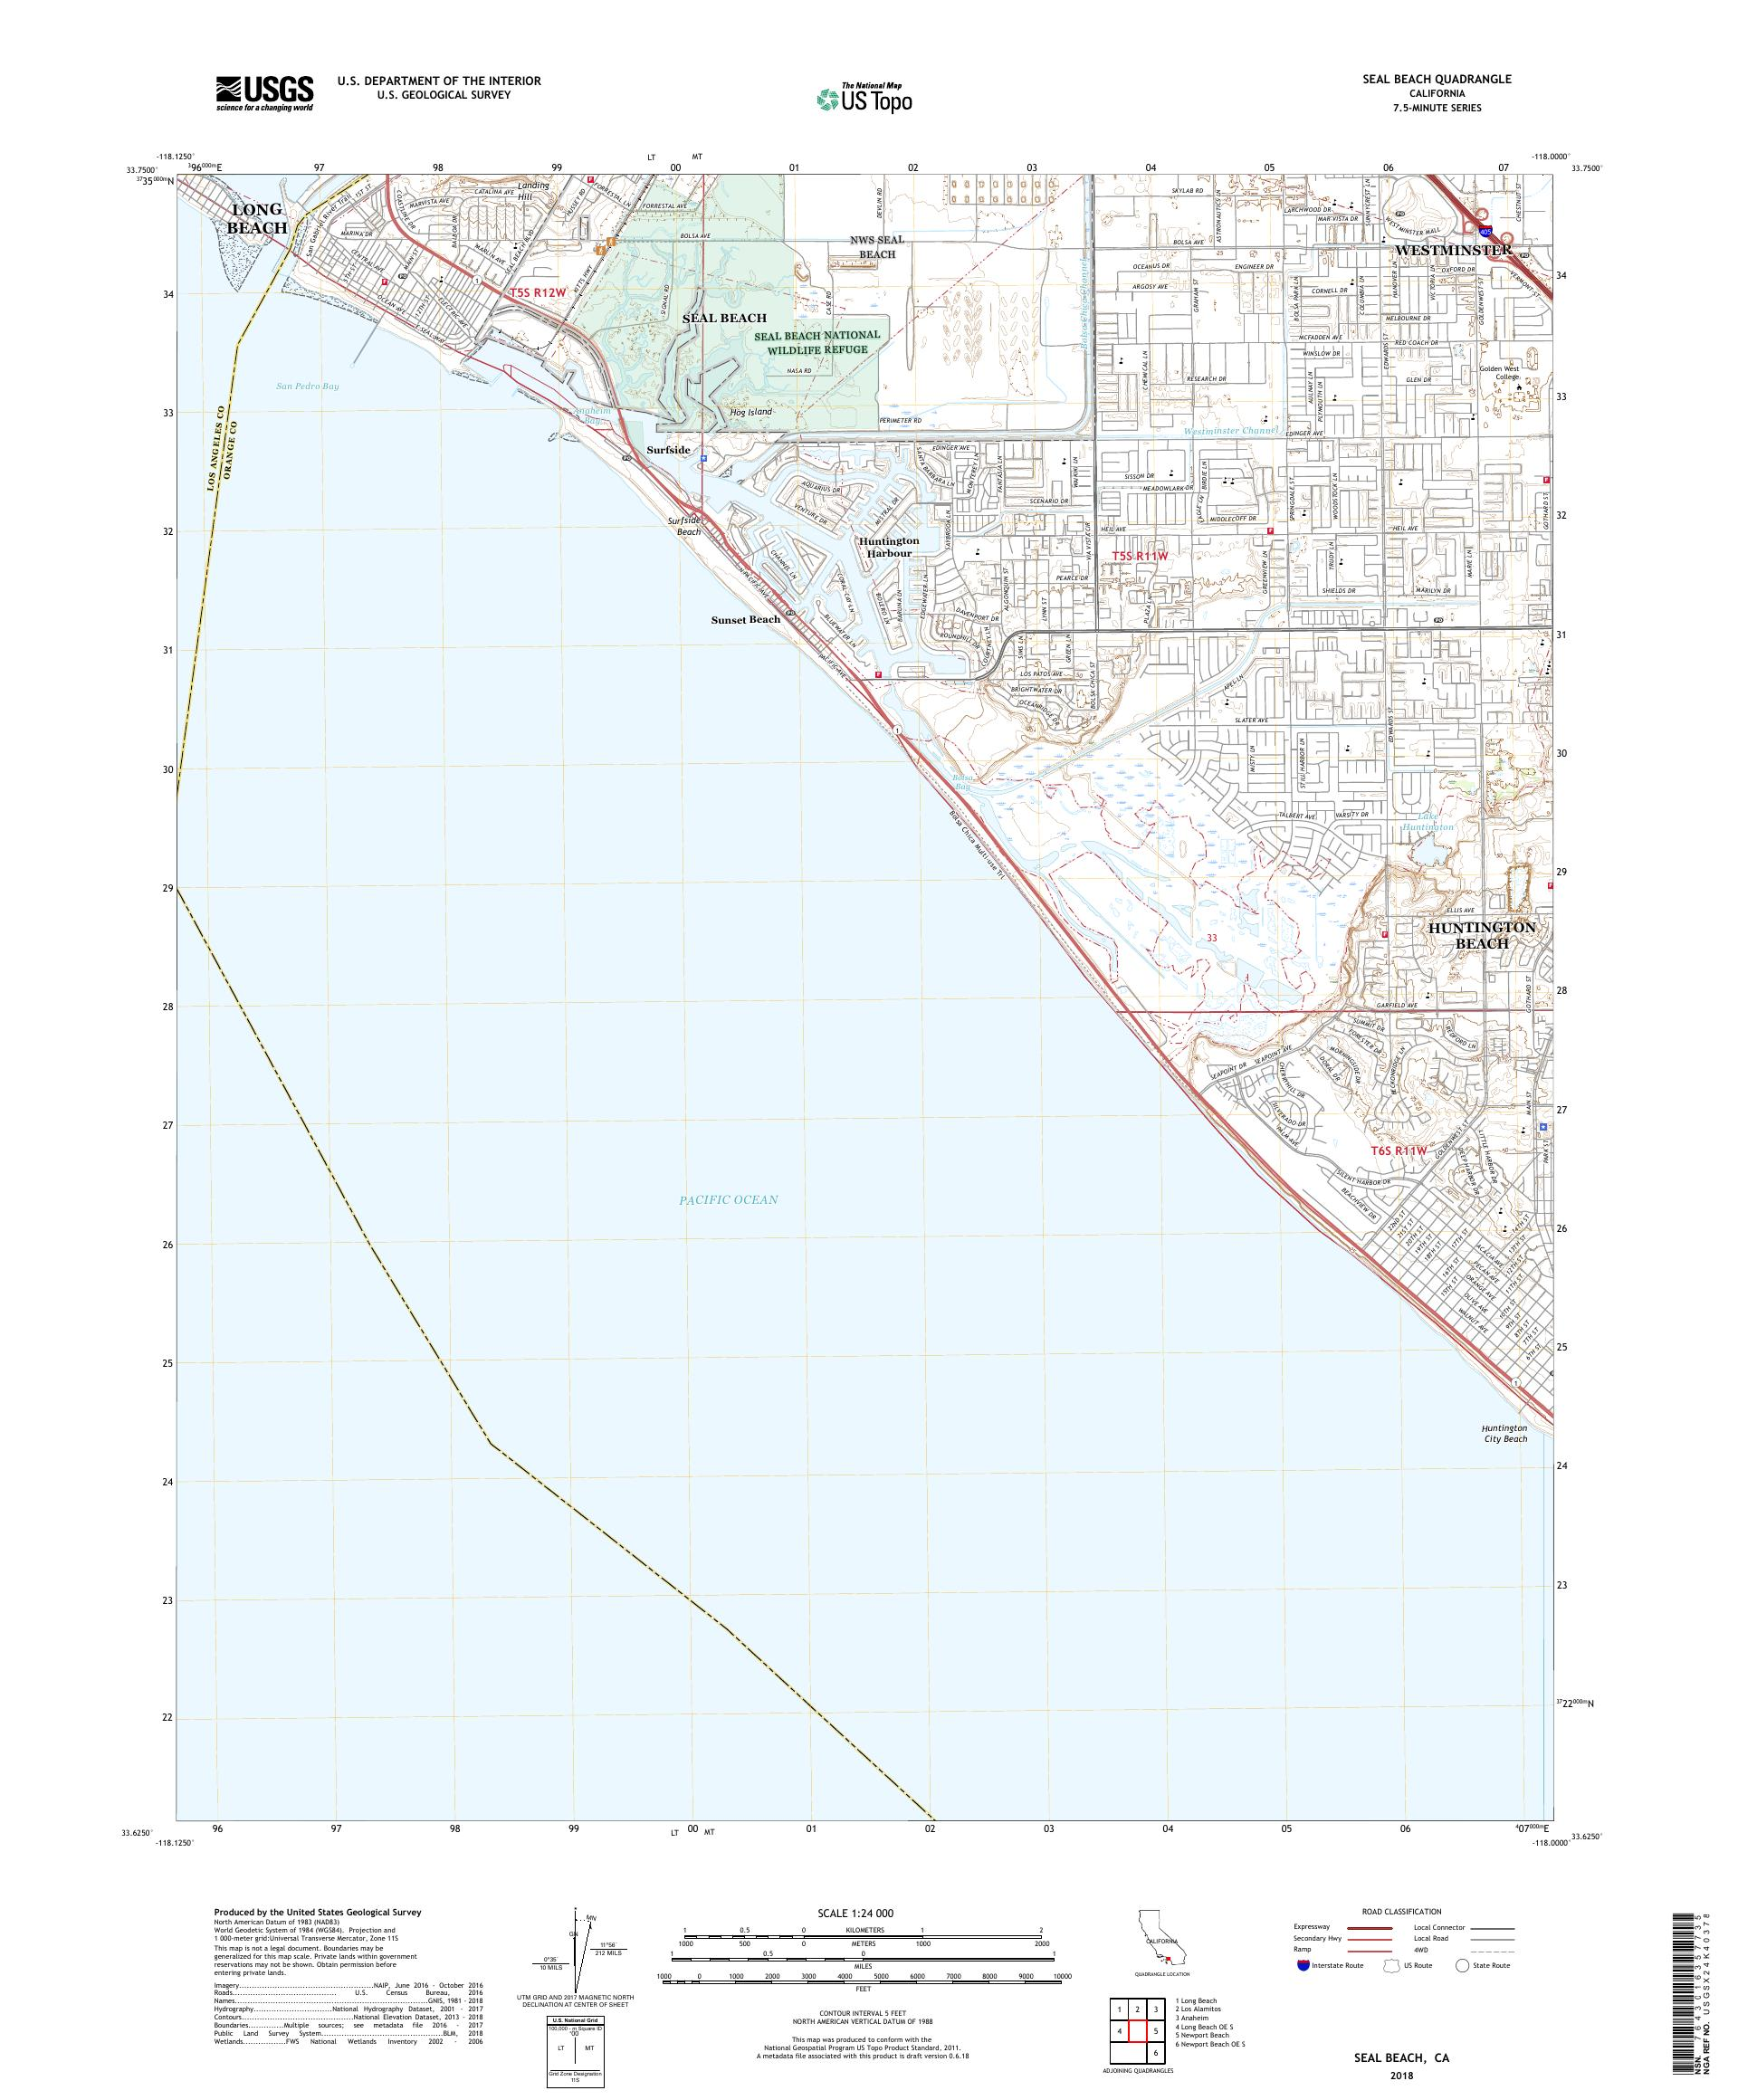 MyTopo Seal Beach, California USGS Quad Topo Map